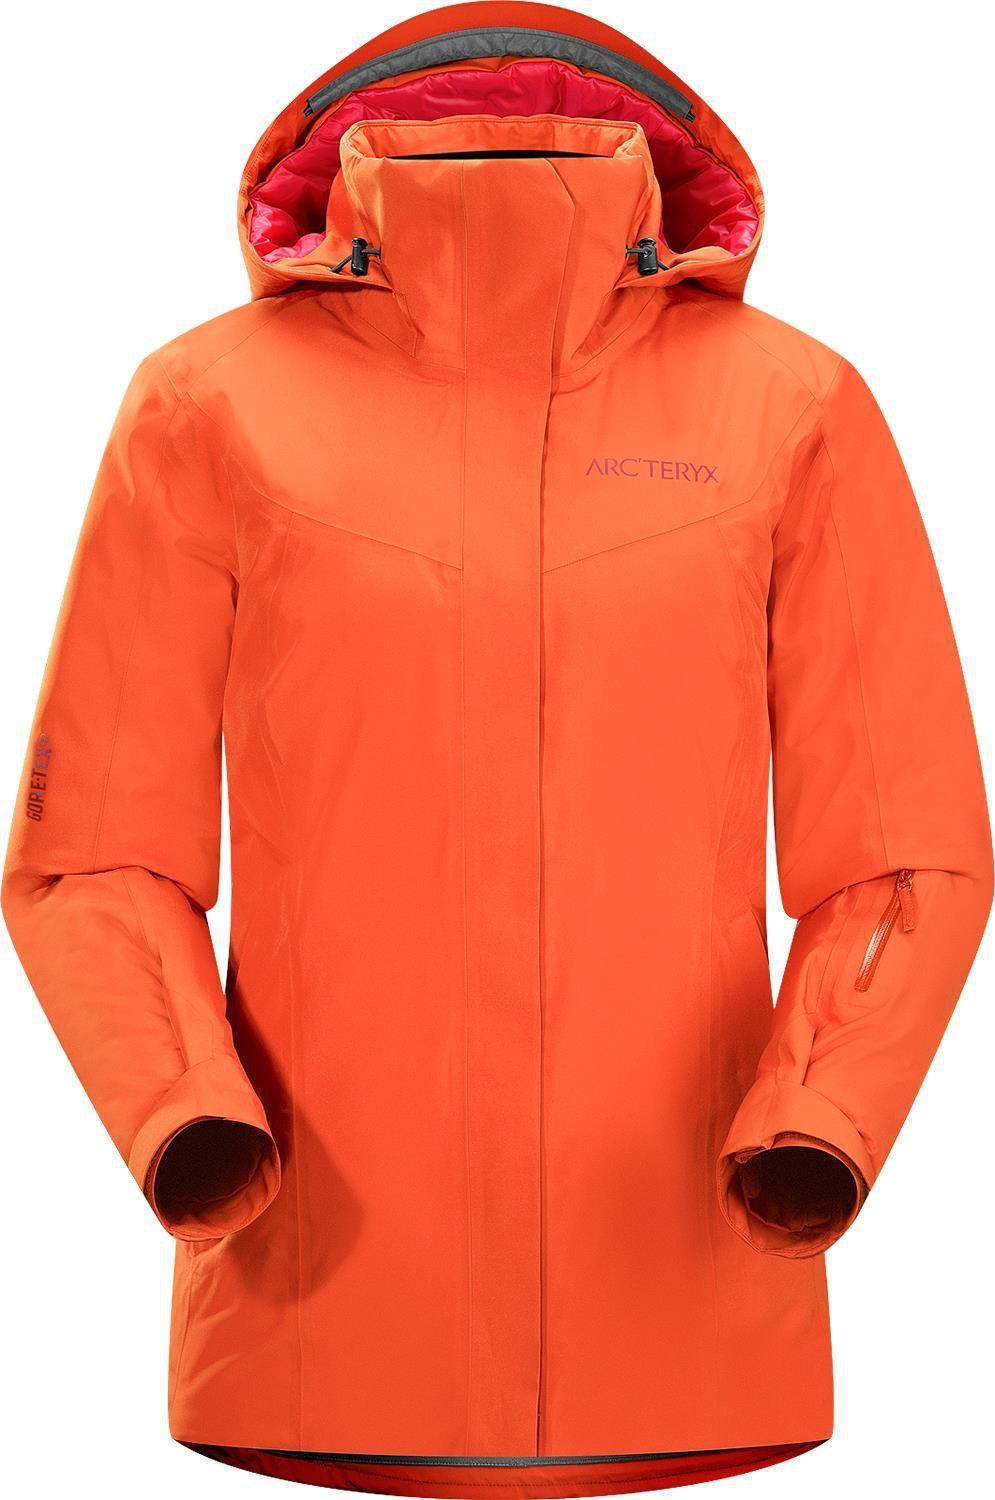 Arcteryx andessa down jacket womens can be bought from jan online store with discount codes and coupon